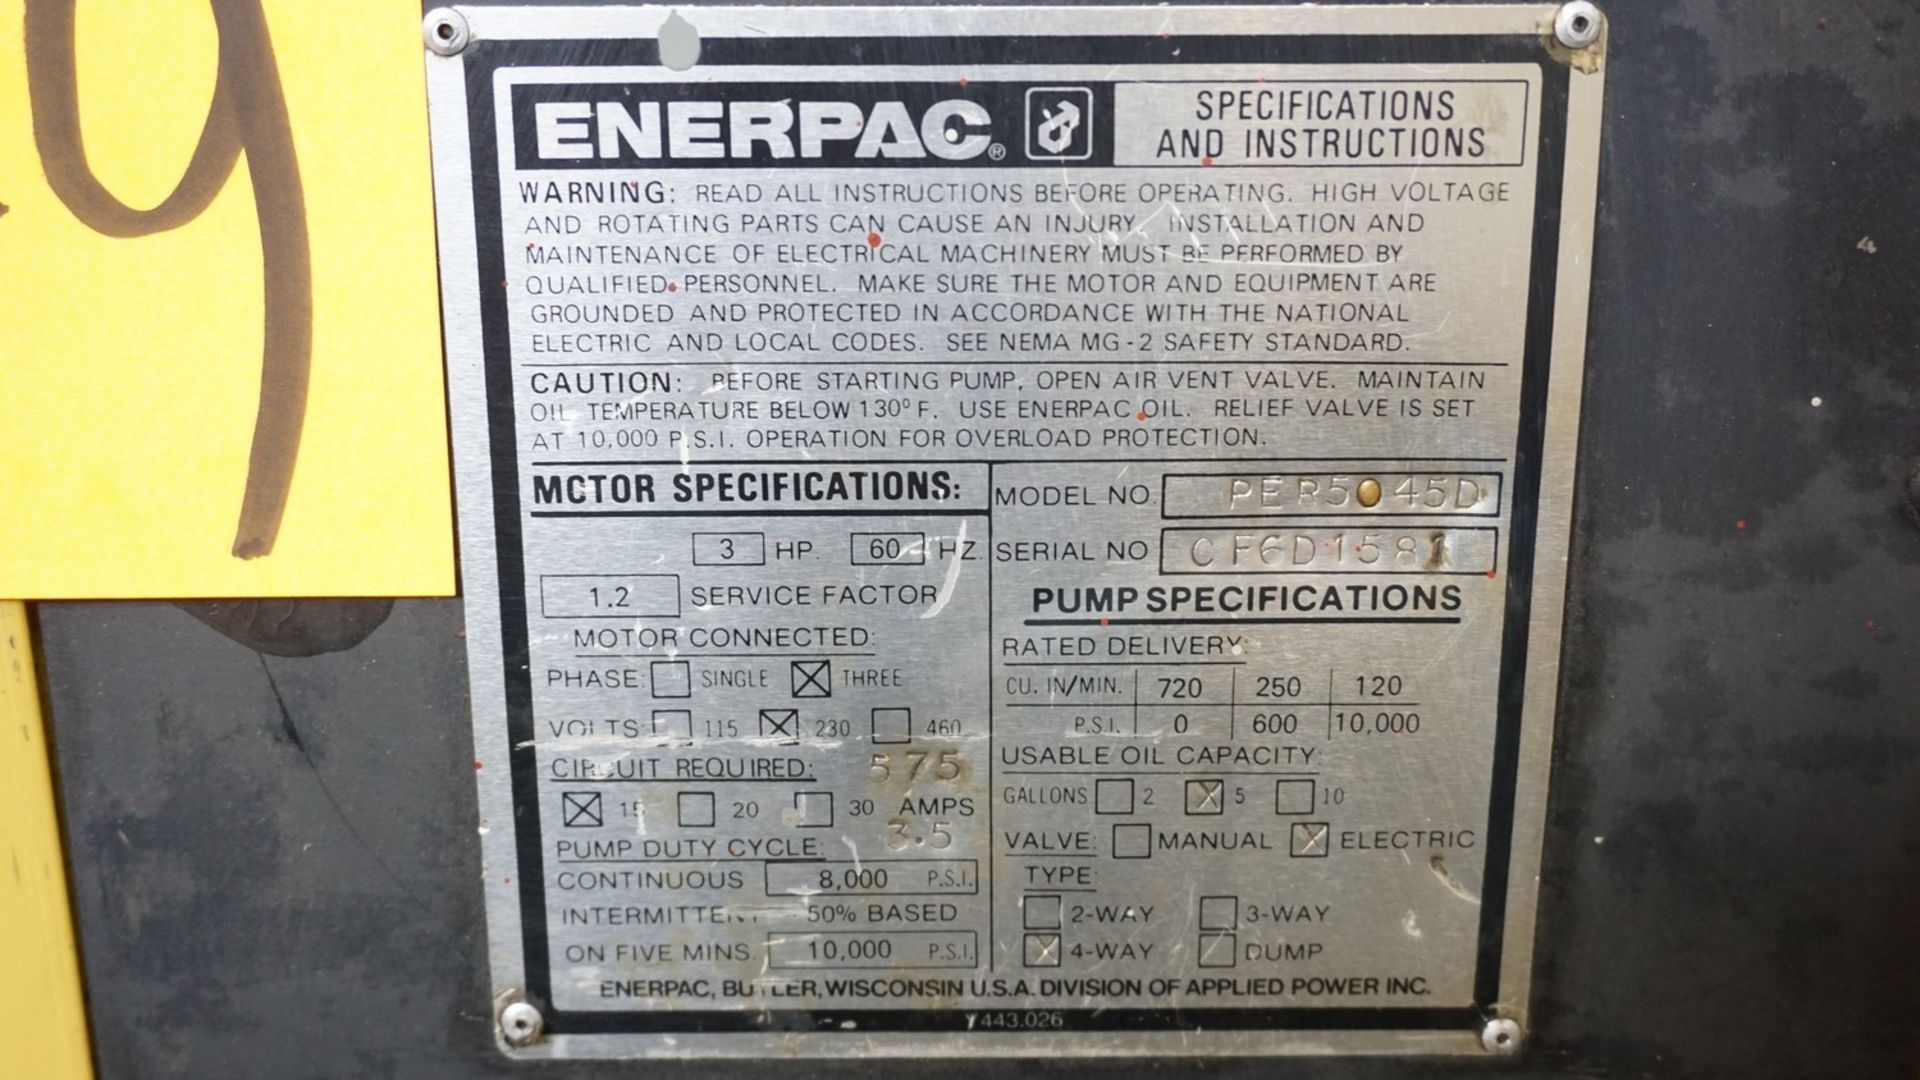 Lot 49 - Enerpac Model PER5045D 575V Hydraulic Power Pack